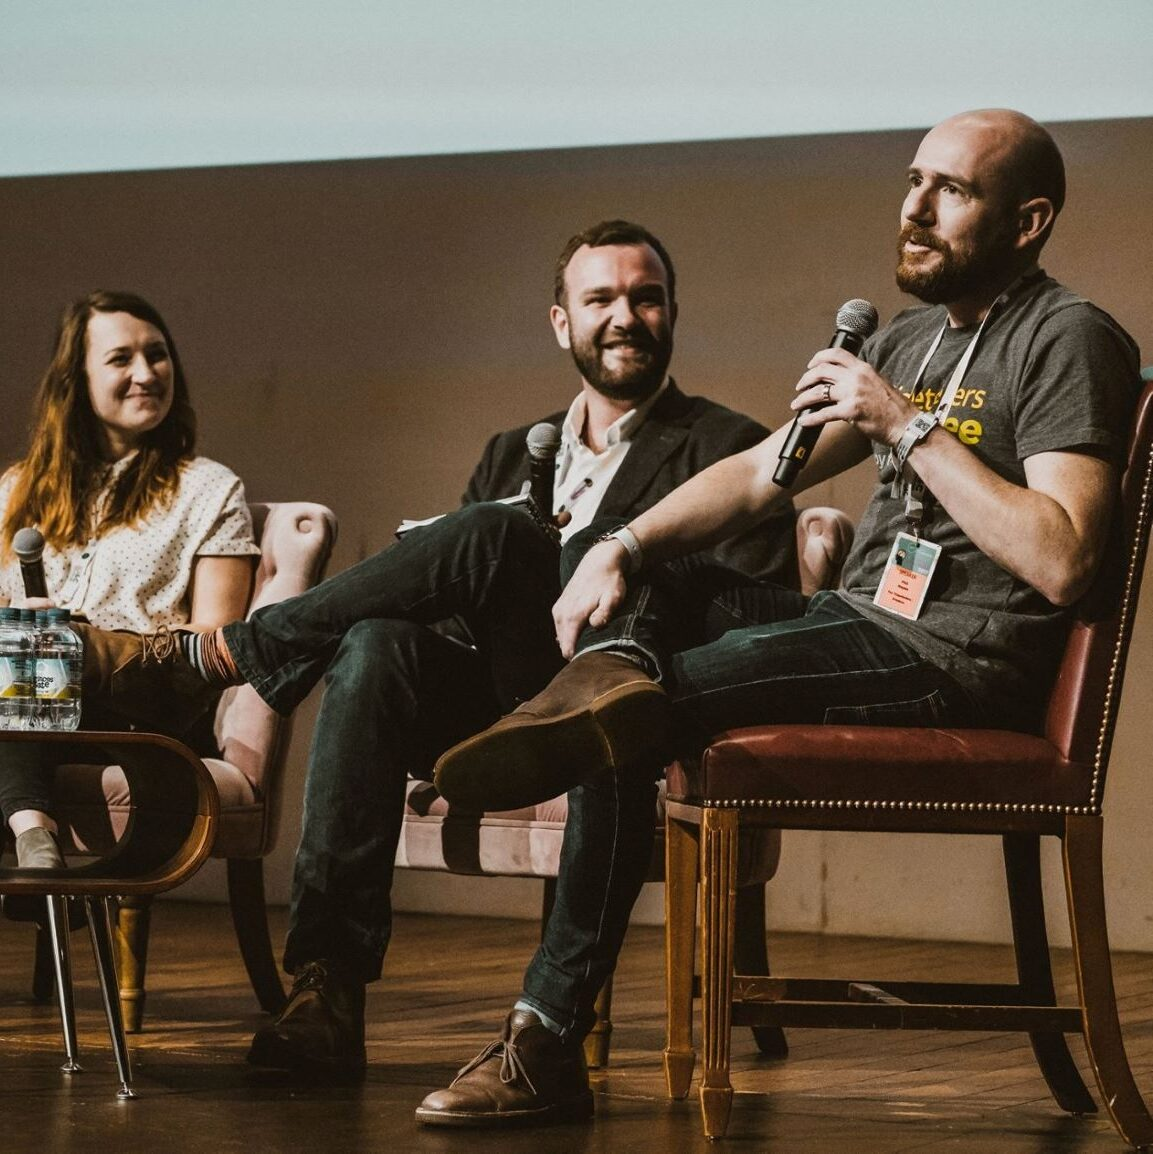 TicketSellers CEO, Phil Hayes, speaking at an Association of Independent Festivals conference in 2017.